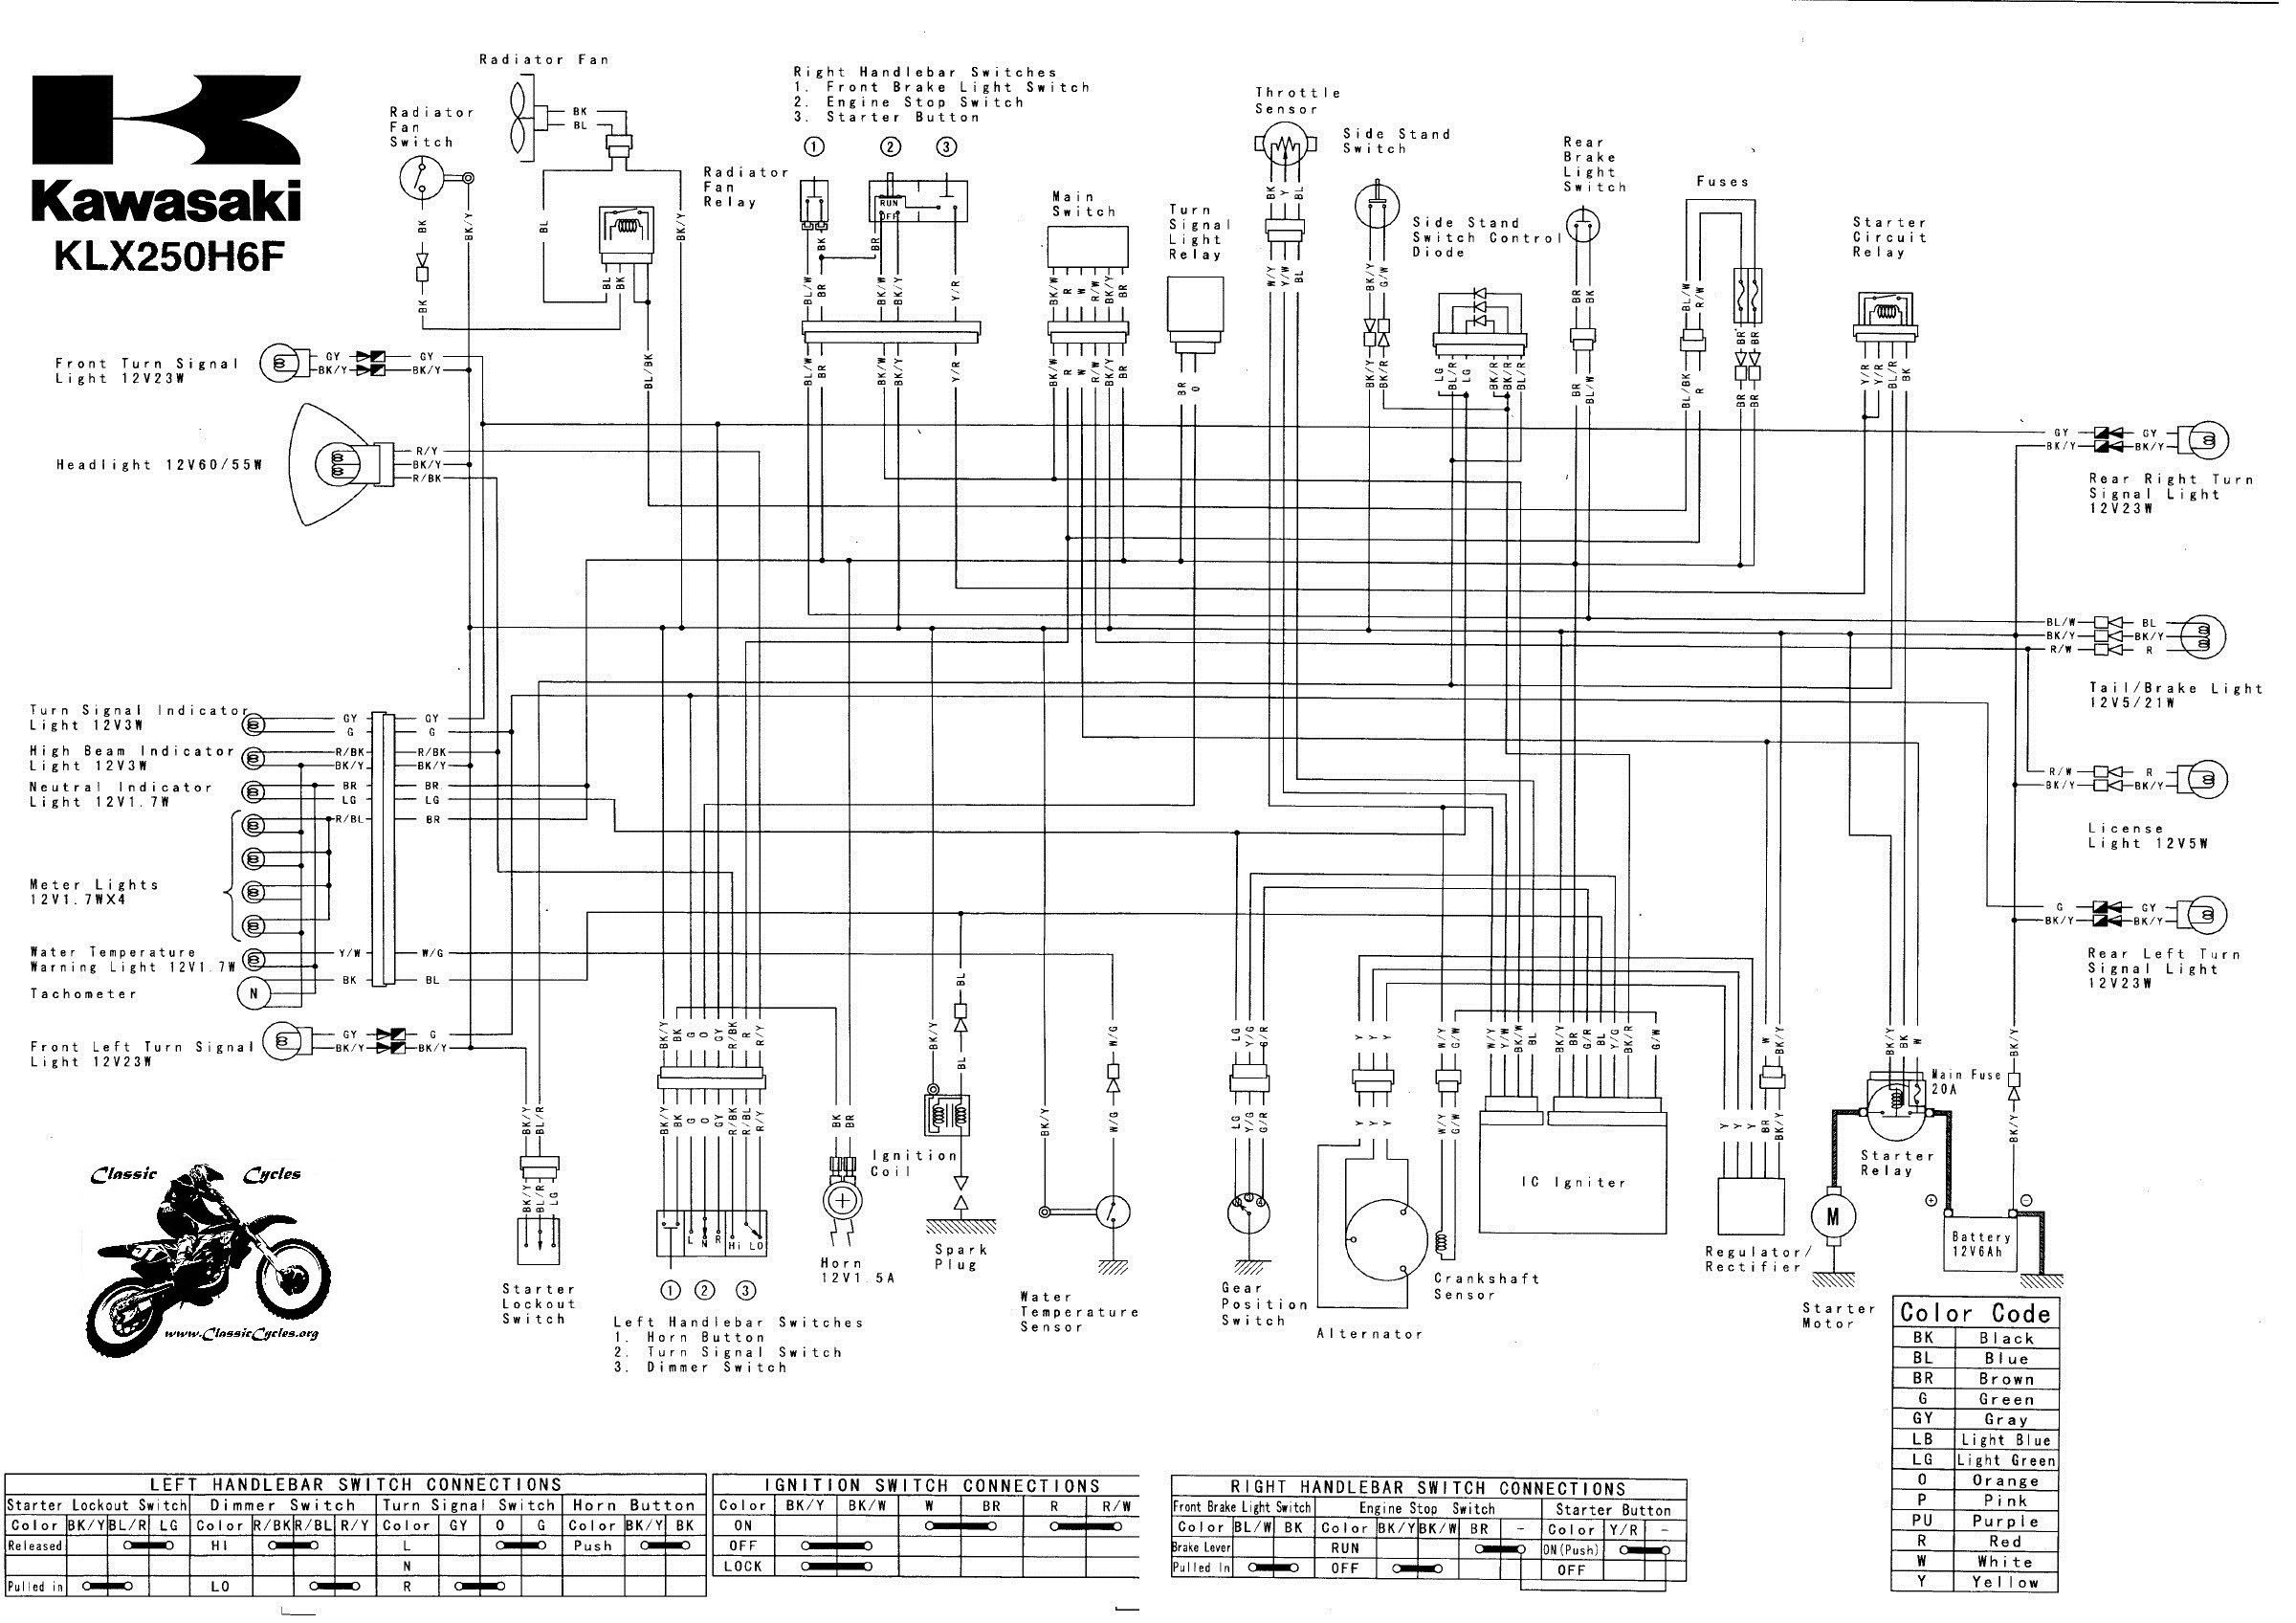 kawasaki klr 250 wiring diagram free download kawasaki klr650 wiring diagram wiring diagram  kawasaki klr650 wiring diagram wiring